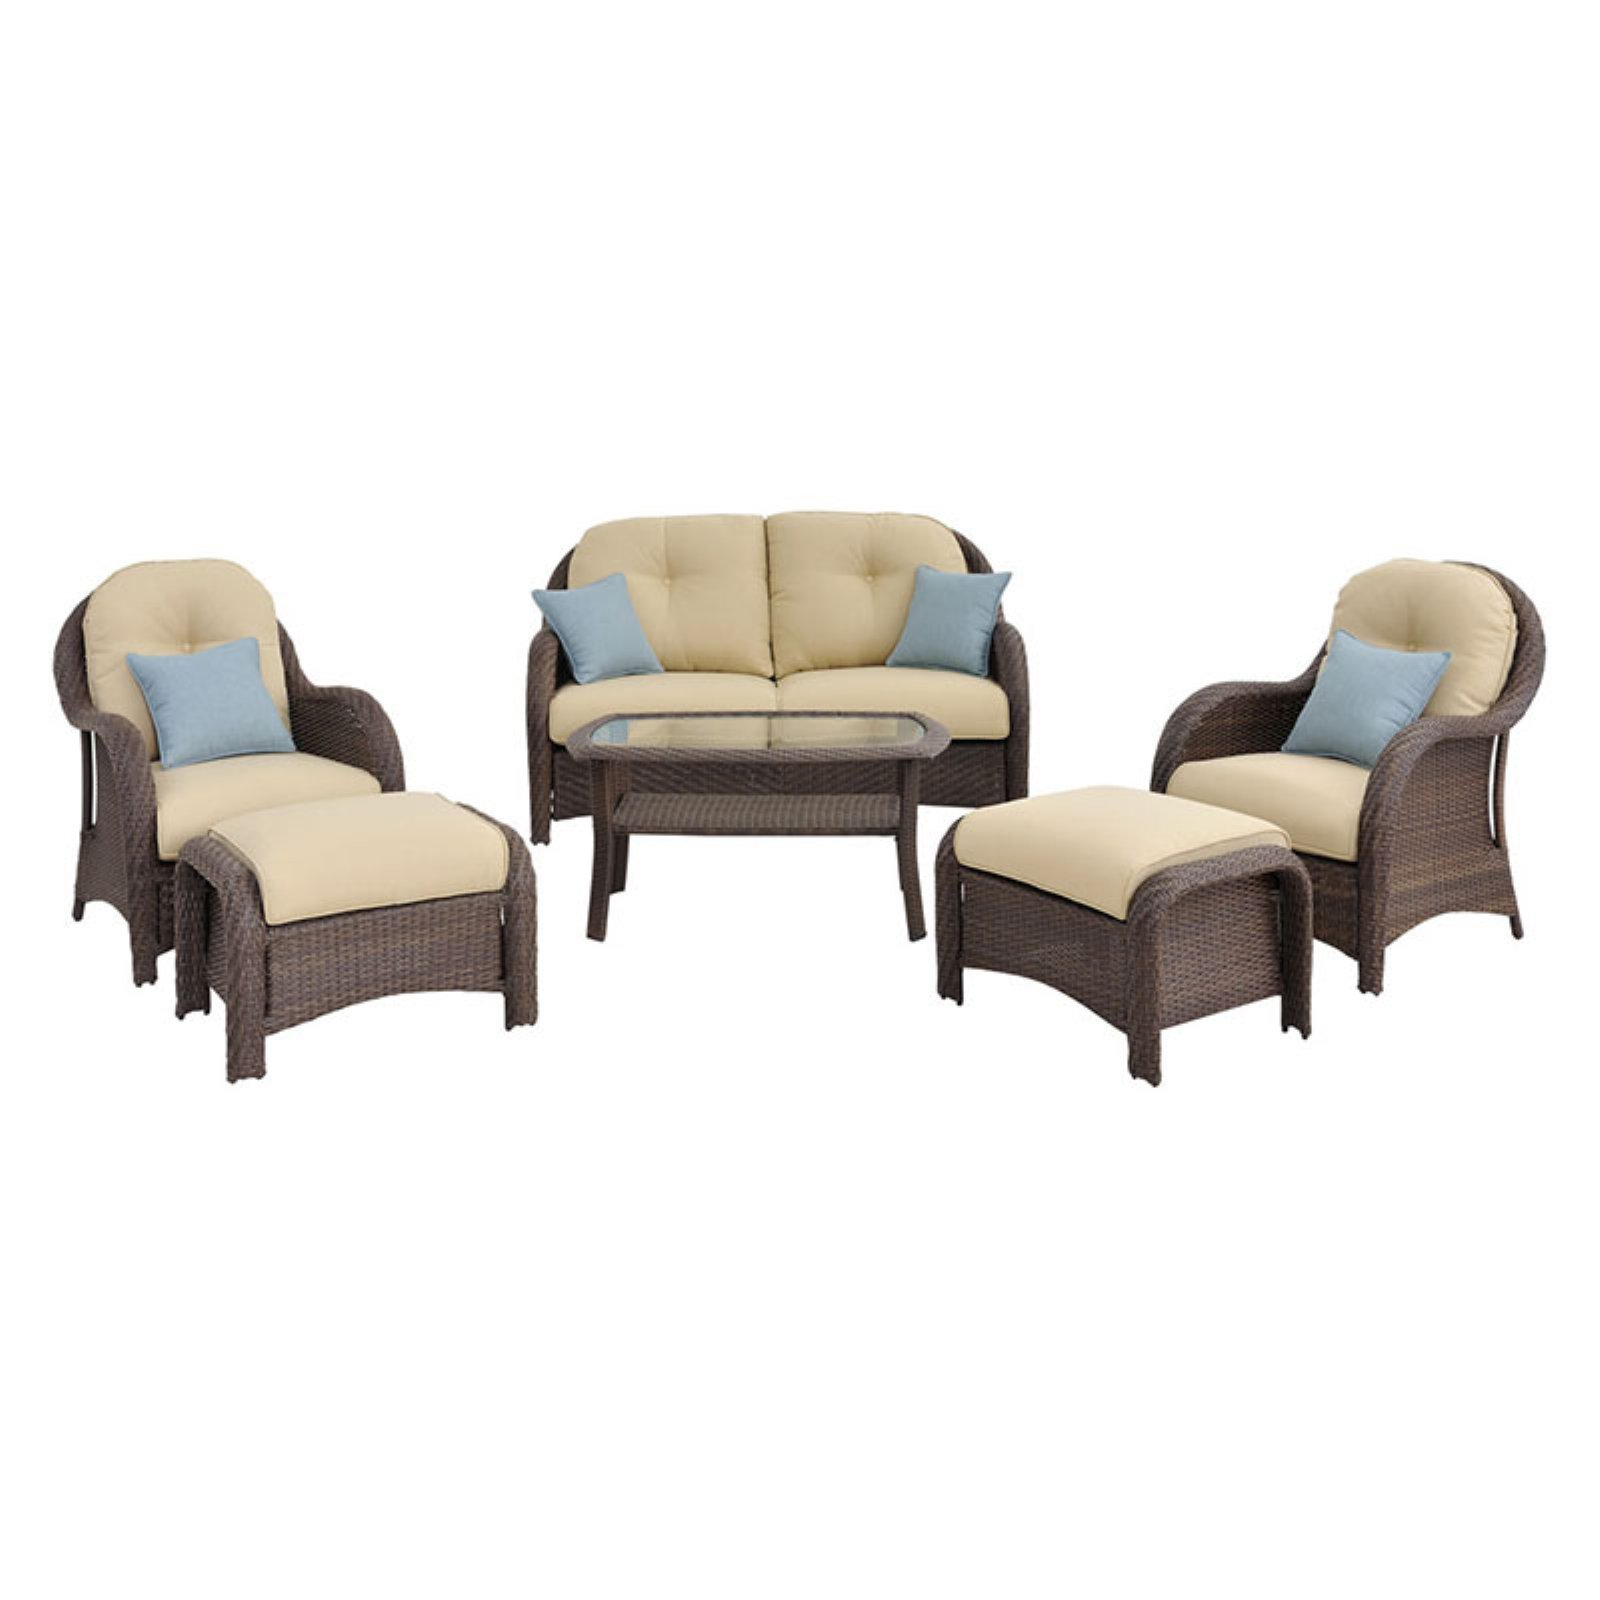 Hanover Newport 6-Piece Outdoor Wicker Lounge Set by Hanover Outdoor Furniture